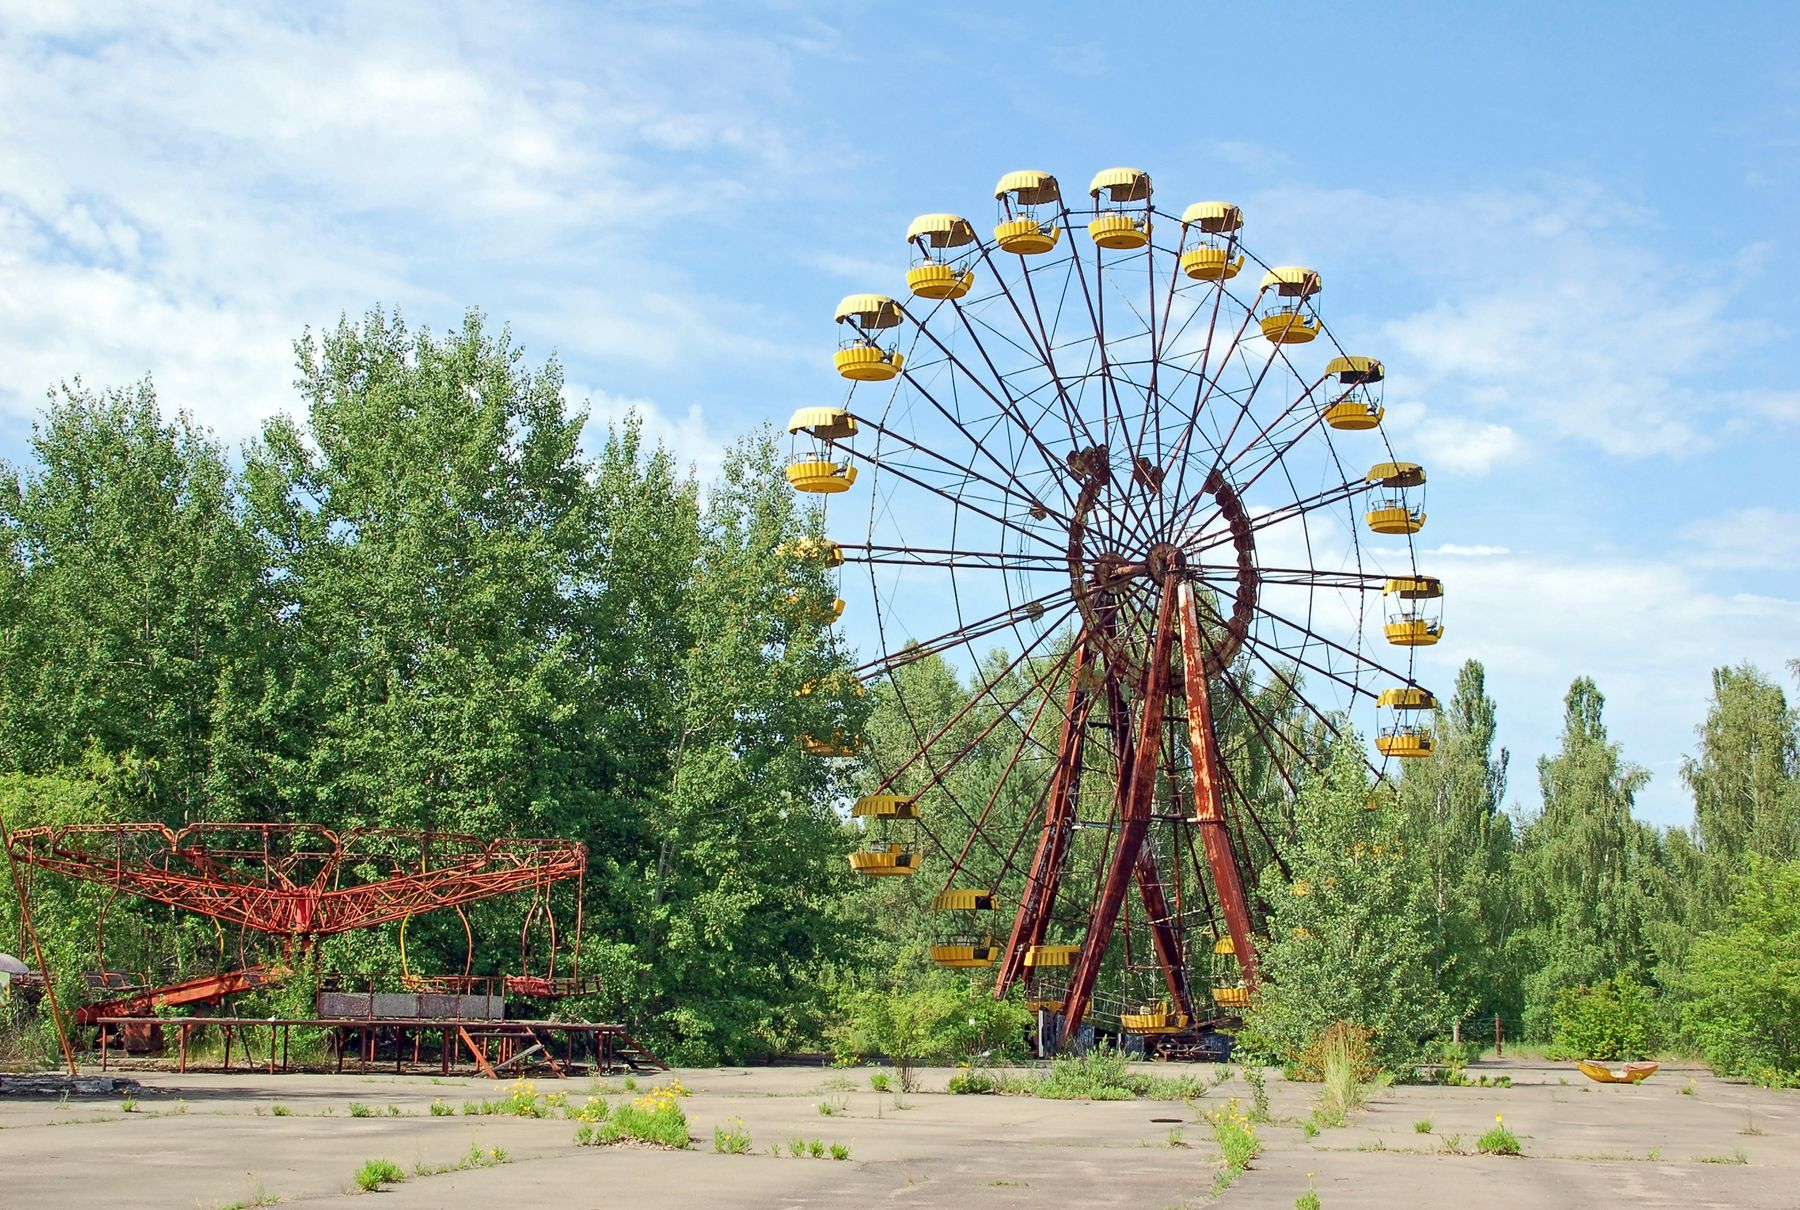 Abandoned amusement park outside the city